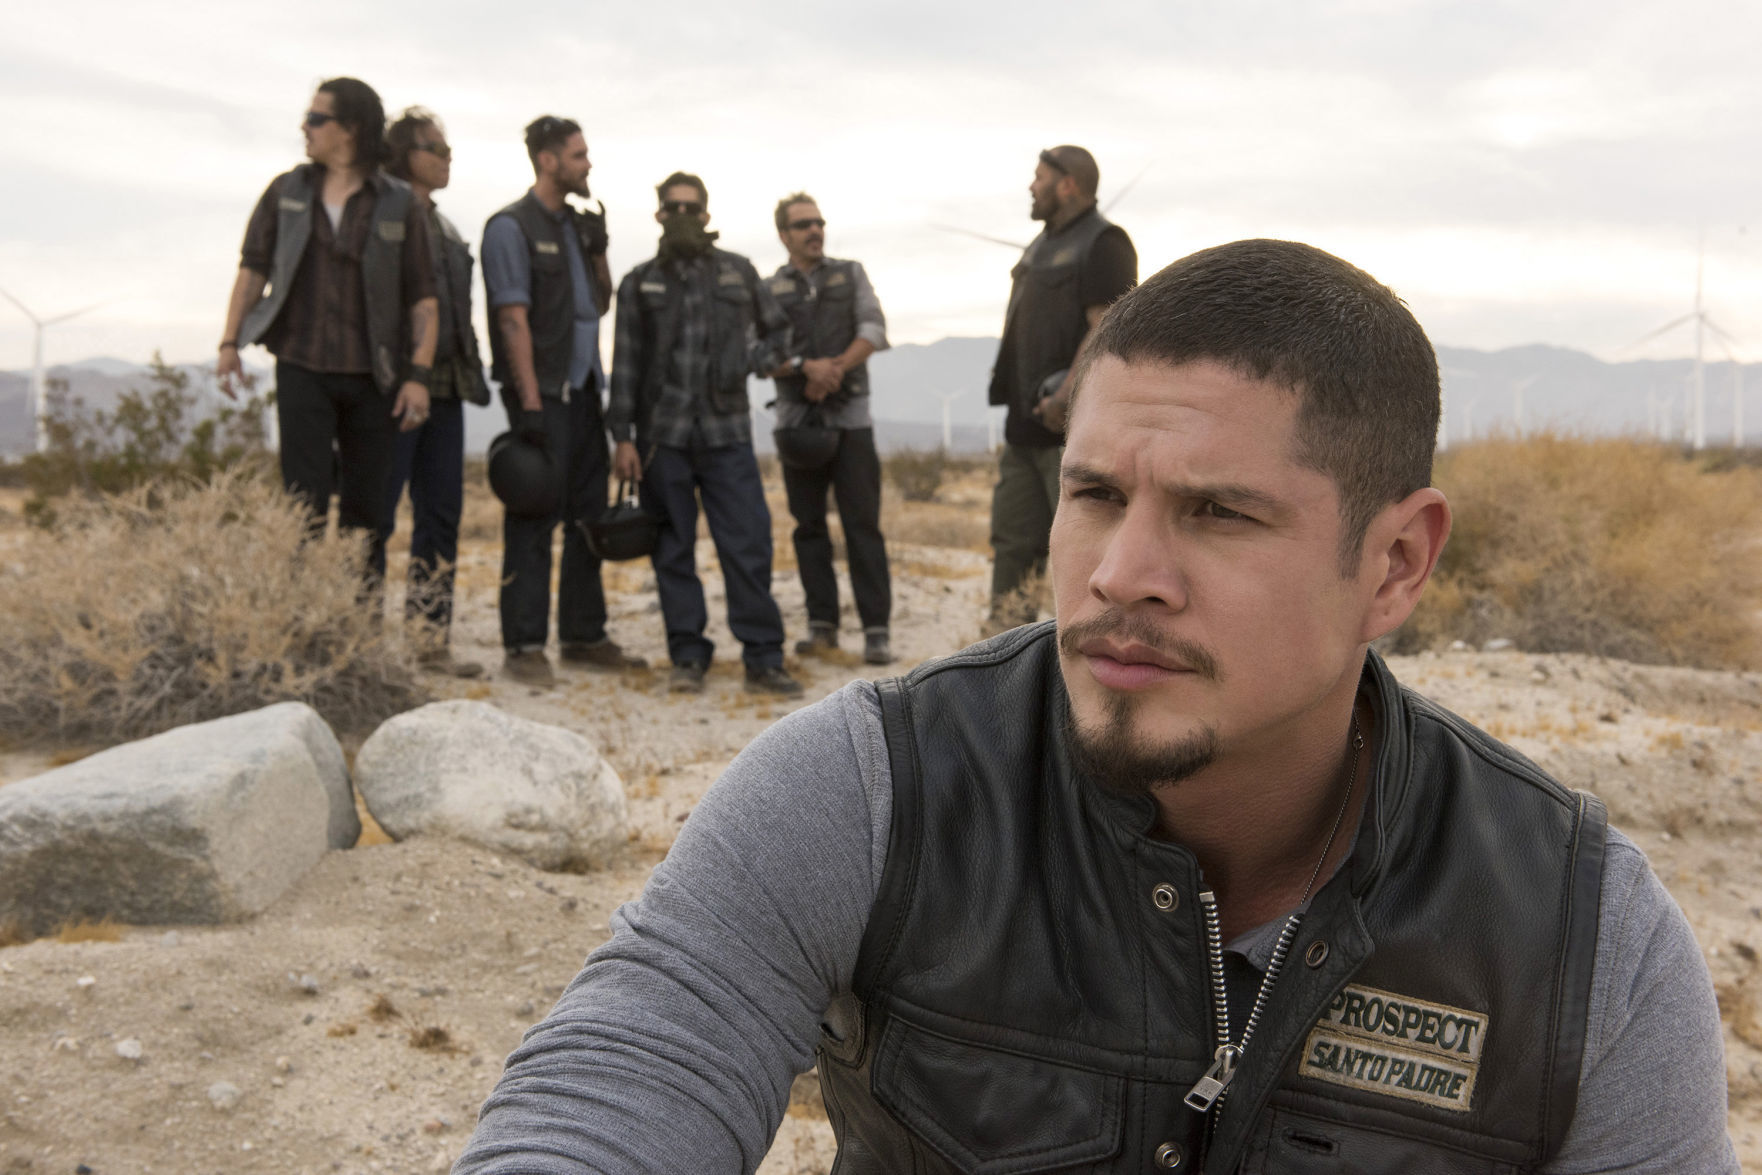 A new  son  rises  J D  Pardo stars in  Sons of Anarchy  spinoff     JD Pardo plays an ex con about to join a motorcycle gang in the new series   Mayans M C